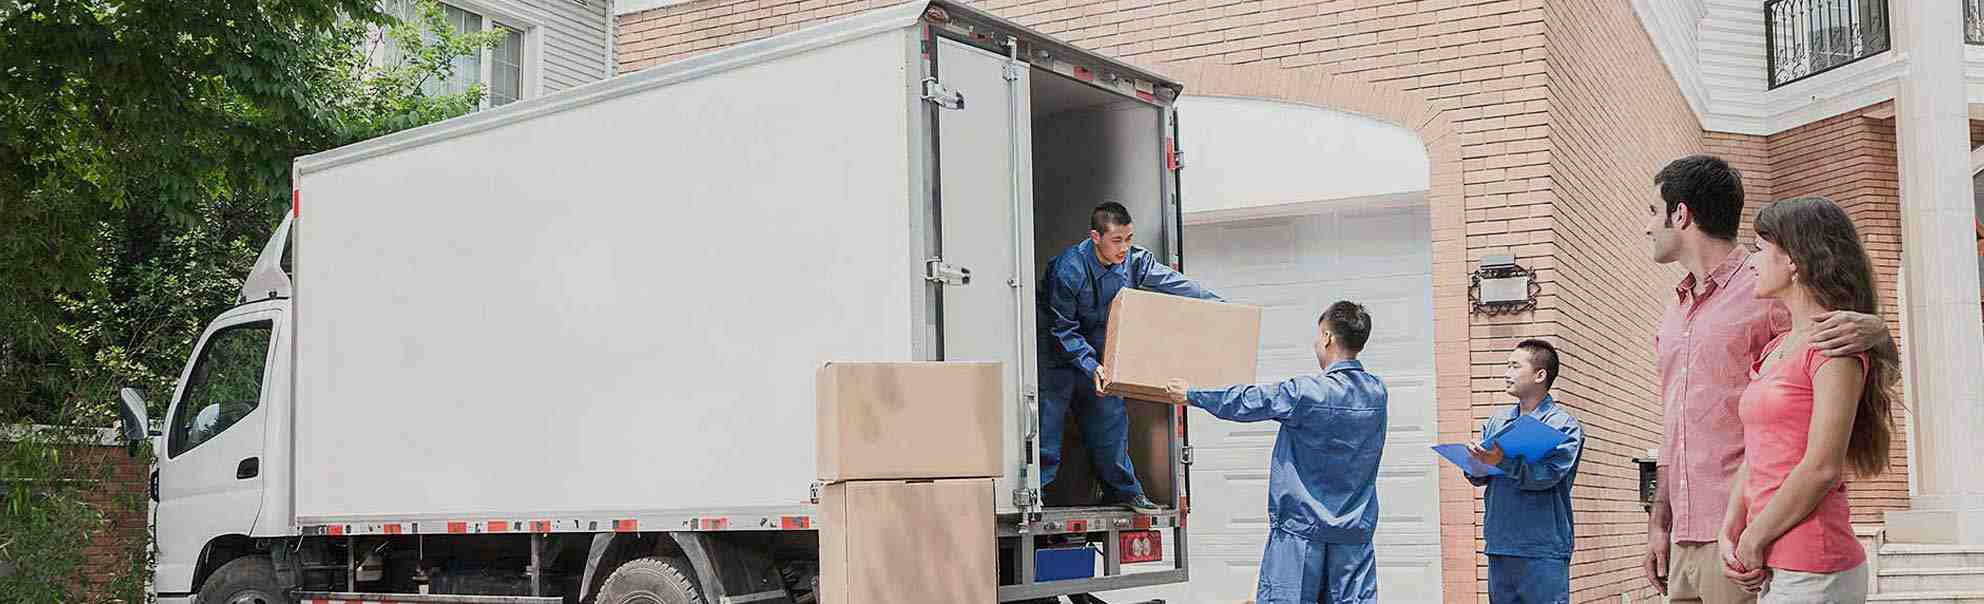 Best movers and packers visakhapatnam